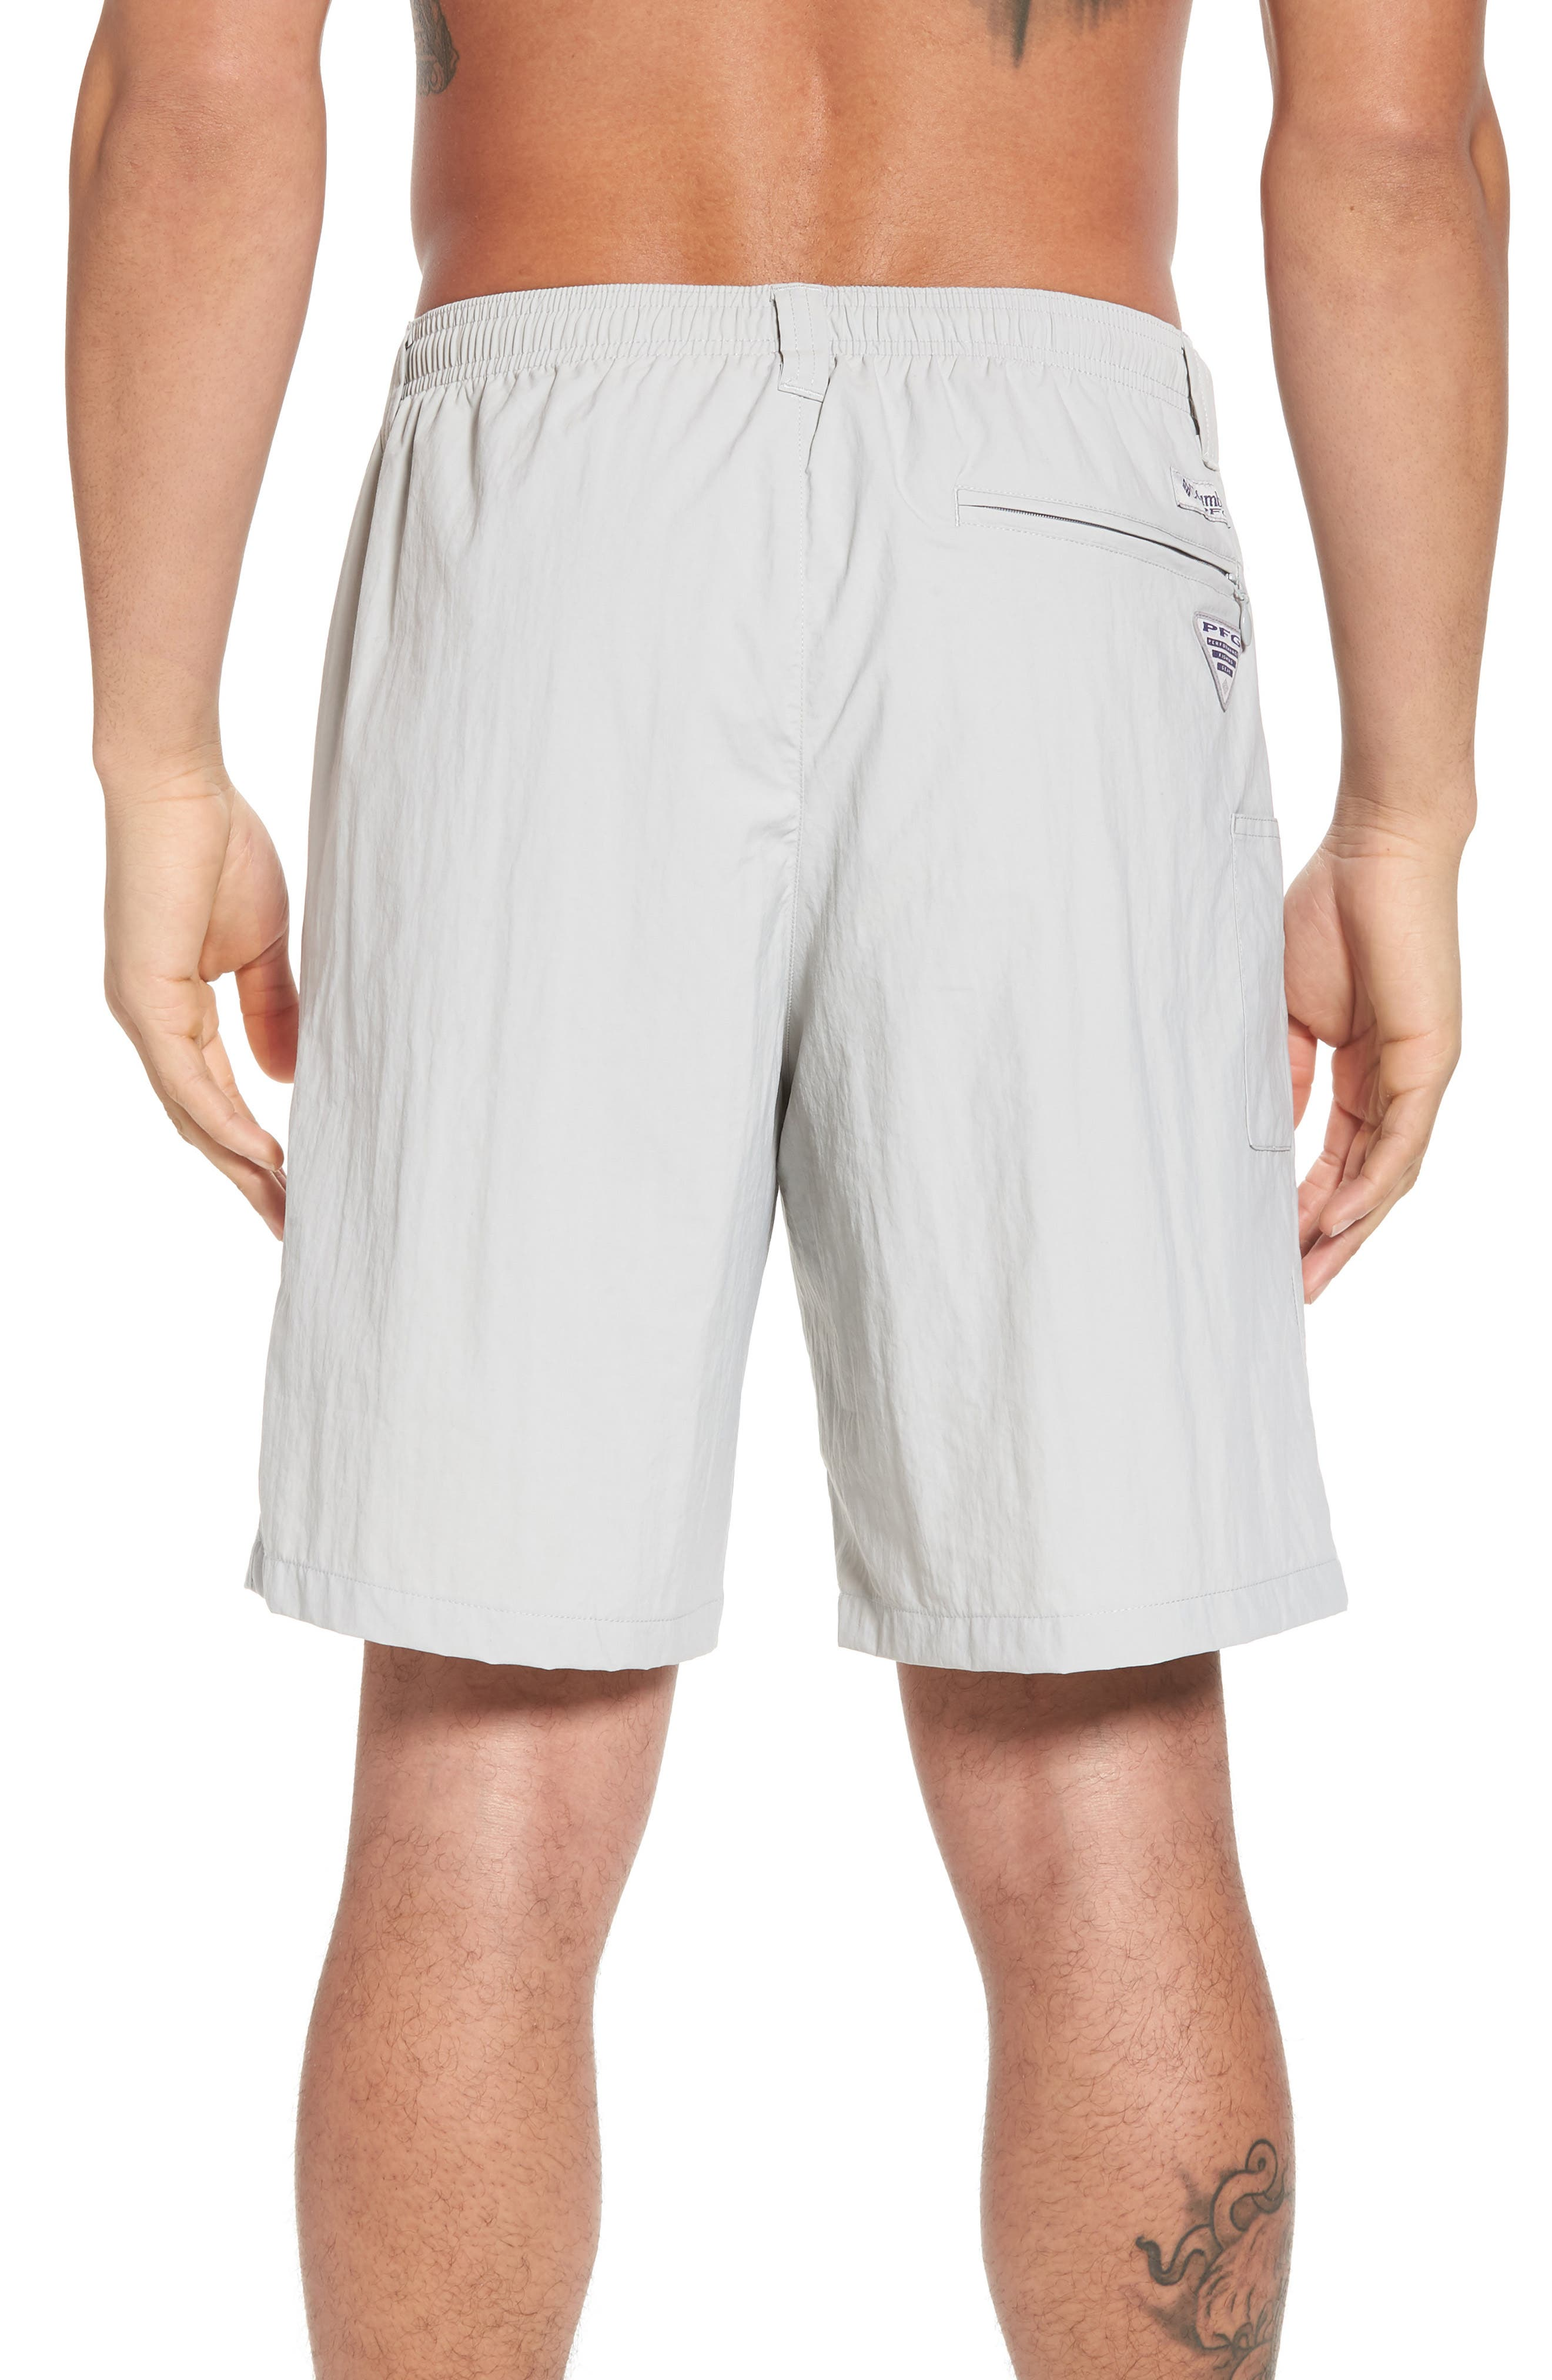 Backcast III Swim Trunks,                             Alternate thumbnail 2, color,                             Cool Grey